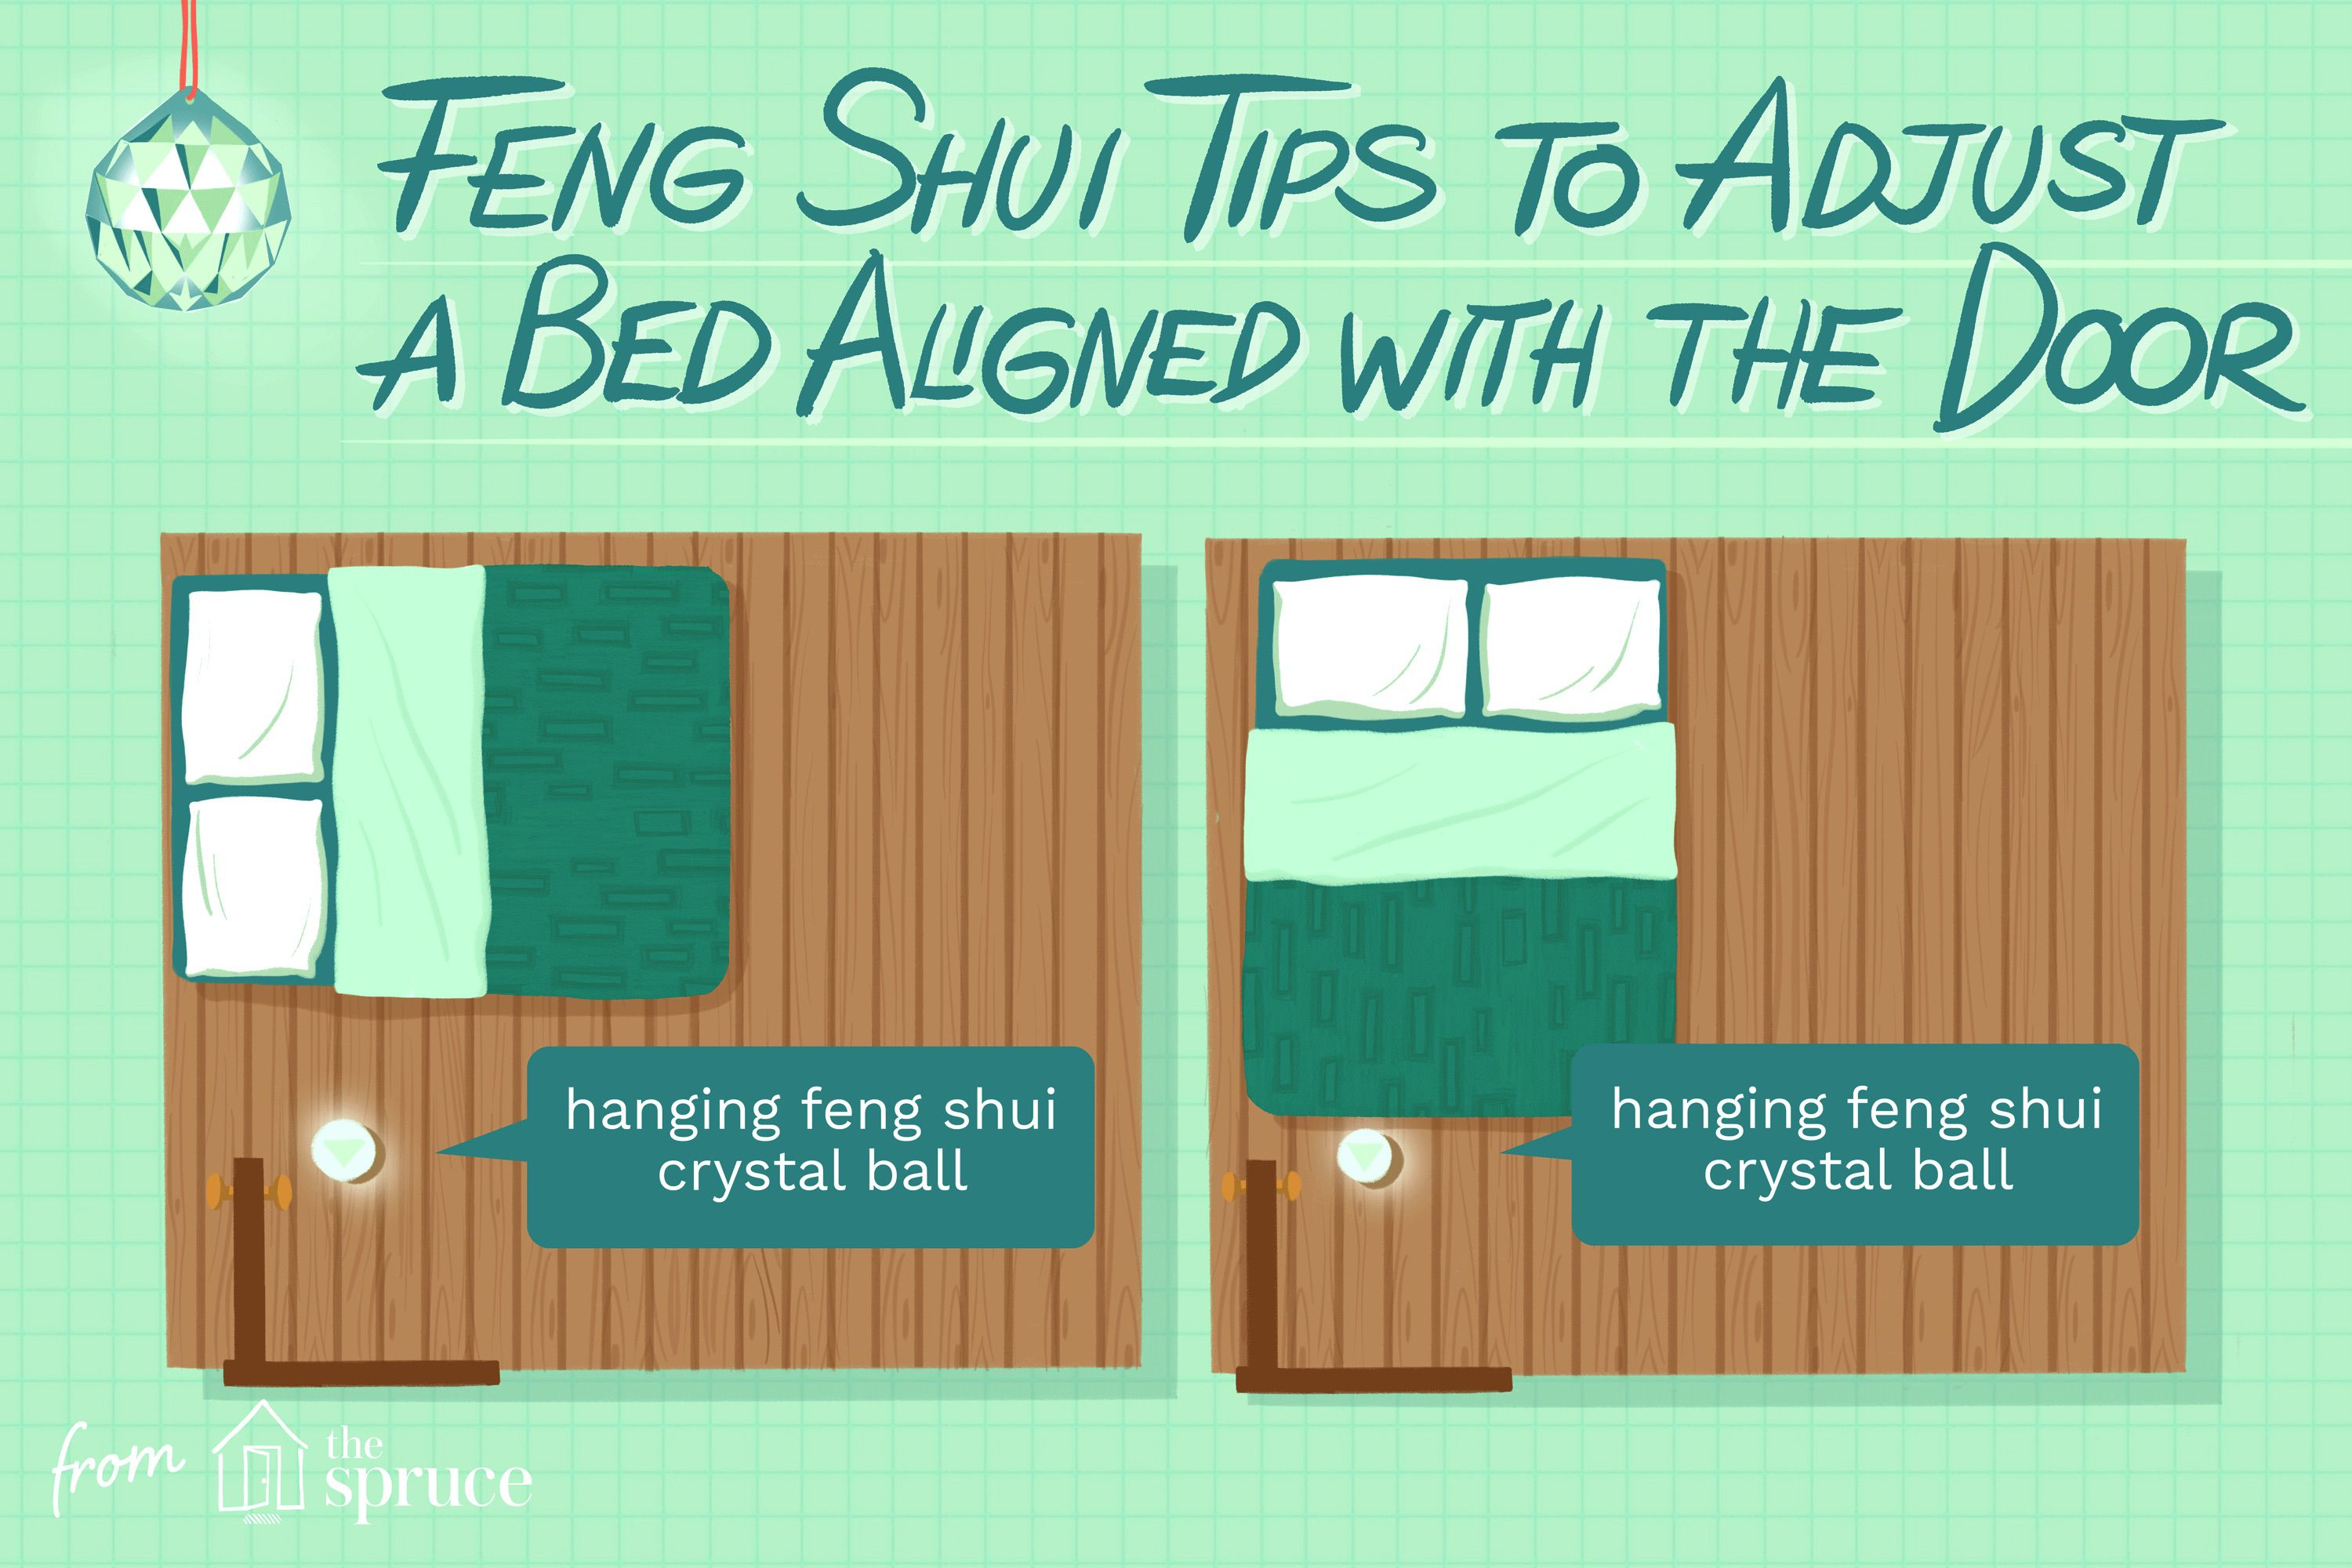 Feng Shui Tips For A Bed Aligned With The Door